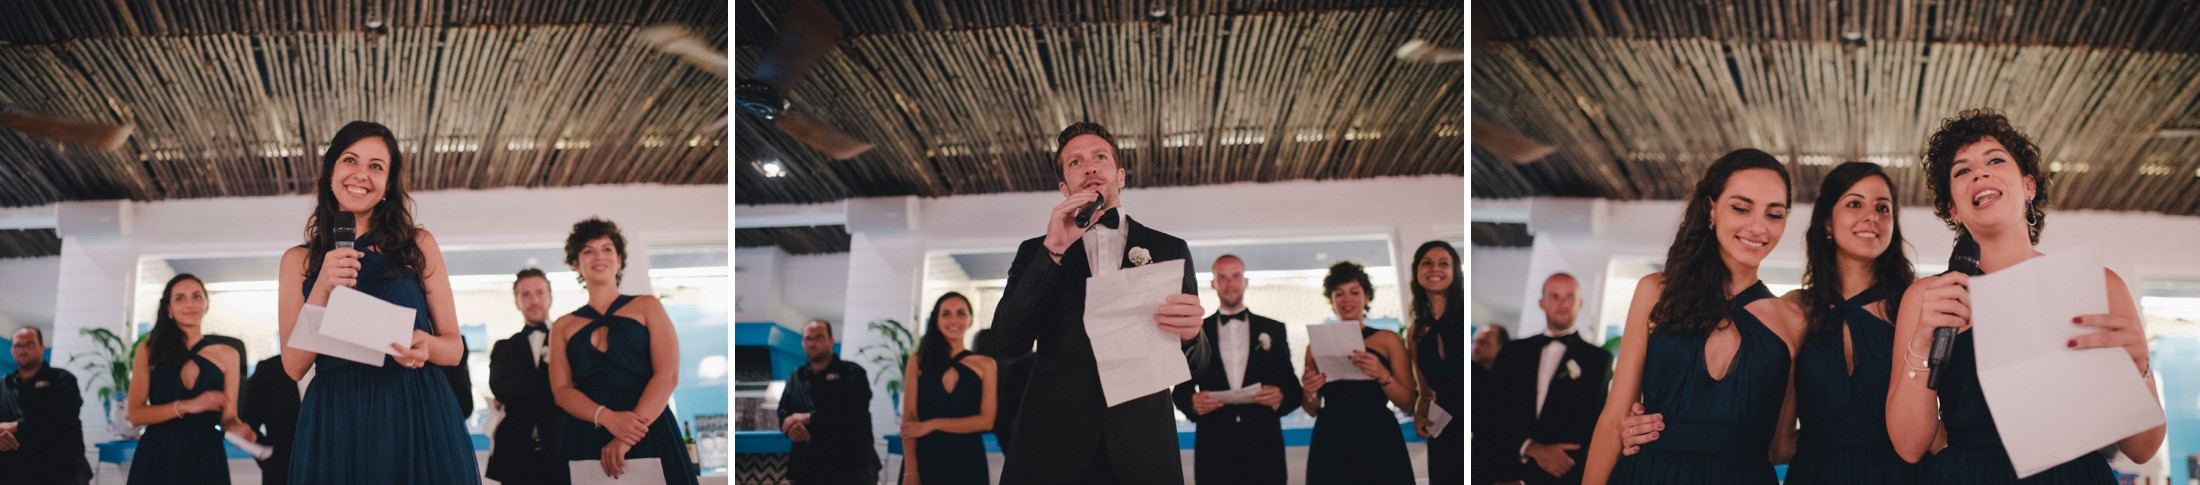 best man and bridesmaids during the speeches collage